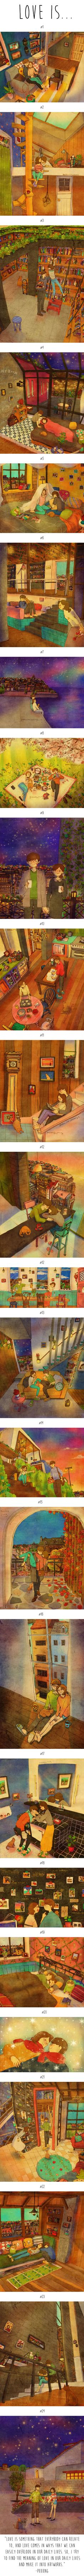 24 Illustrations Show Little Things In Life Make Part Of A Great Love Story (By Puuung)